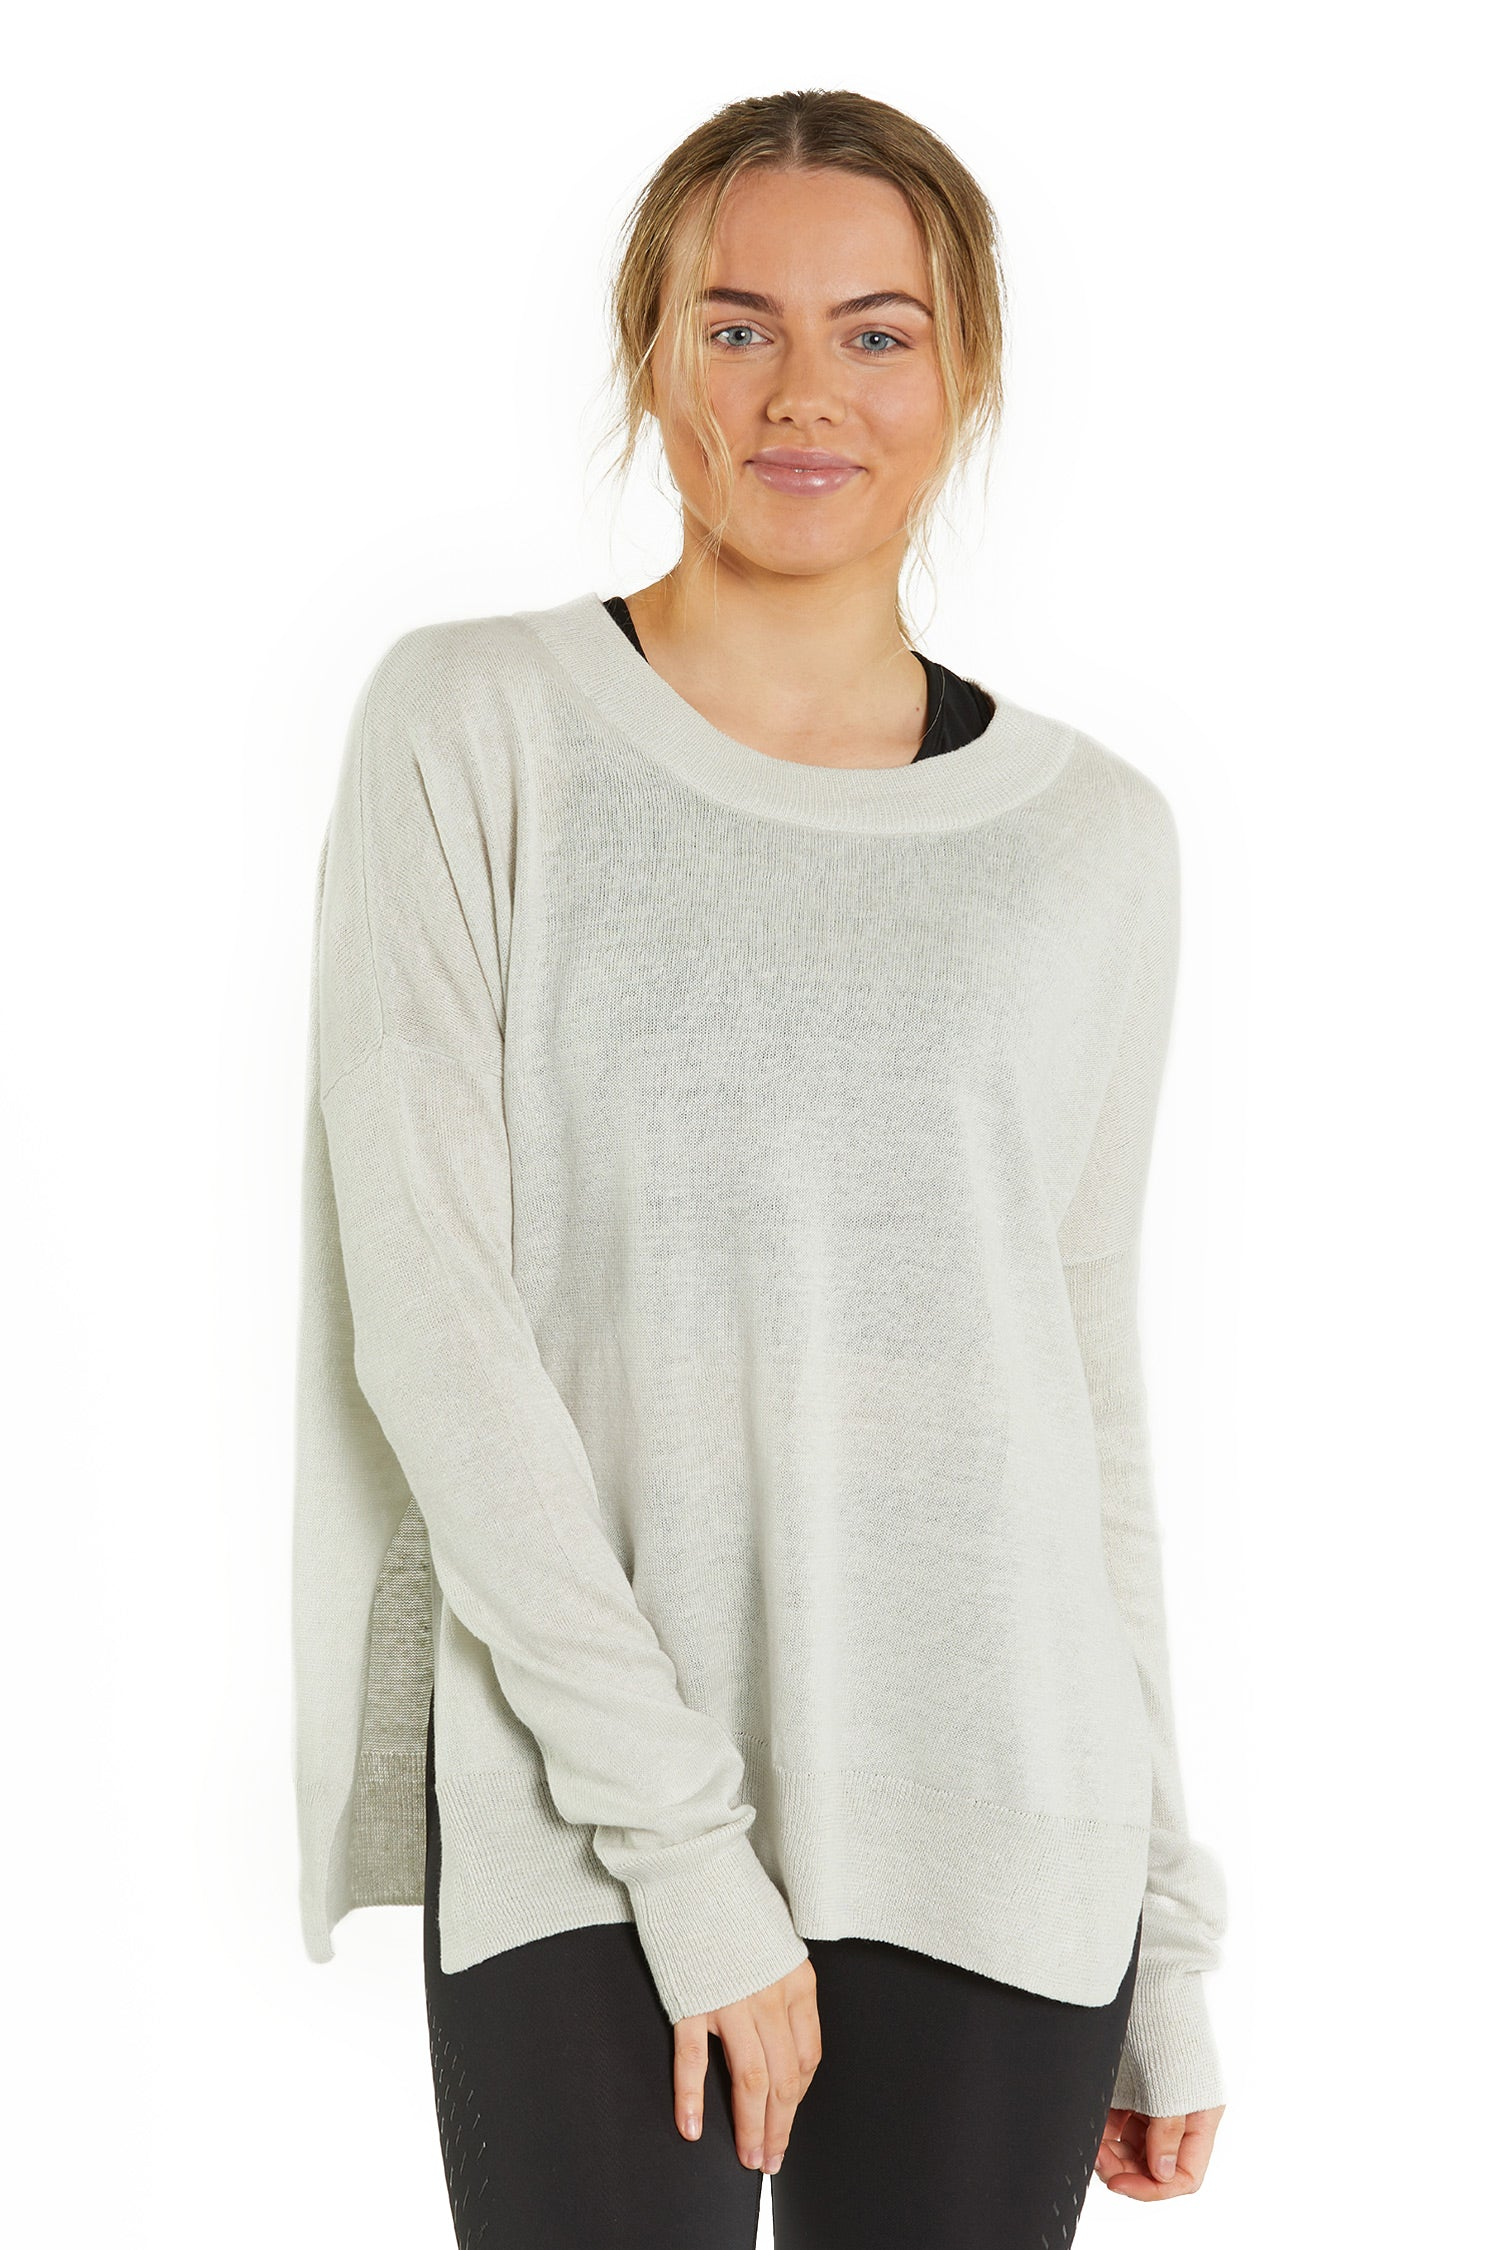 Celestial Knit Jumper